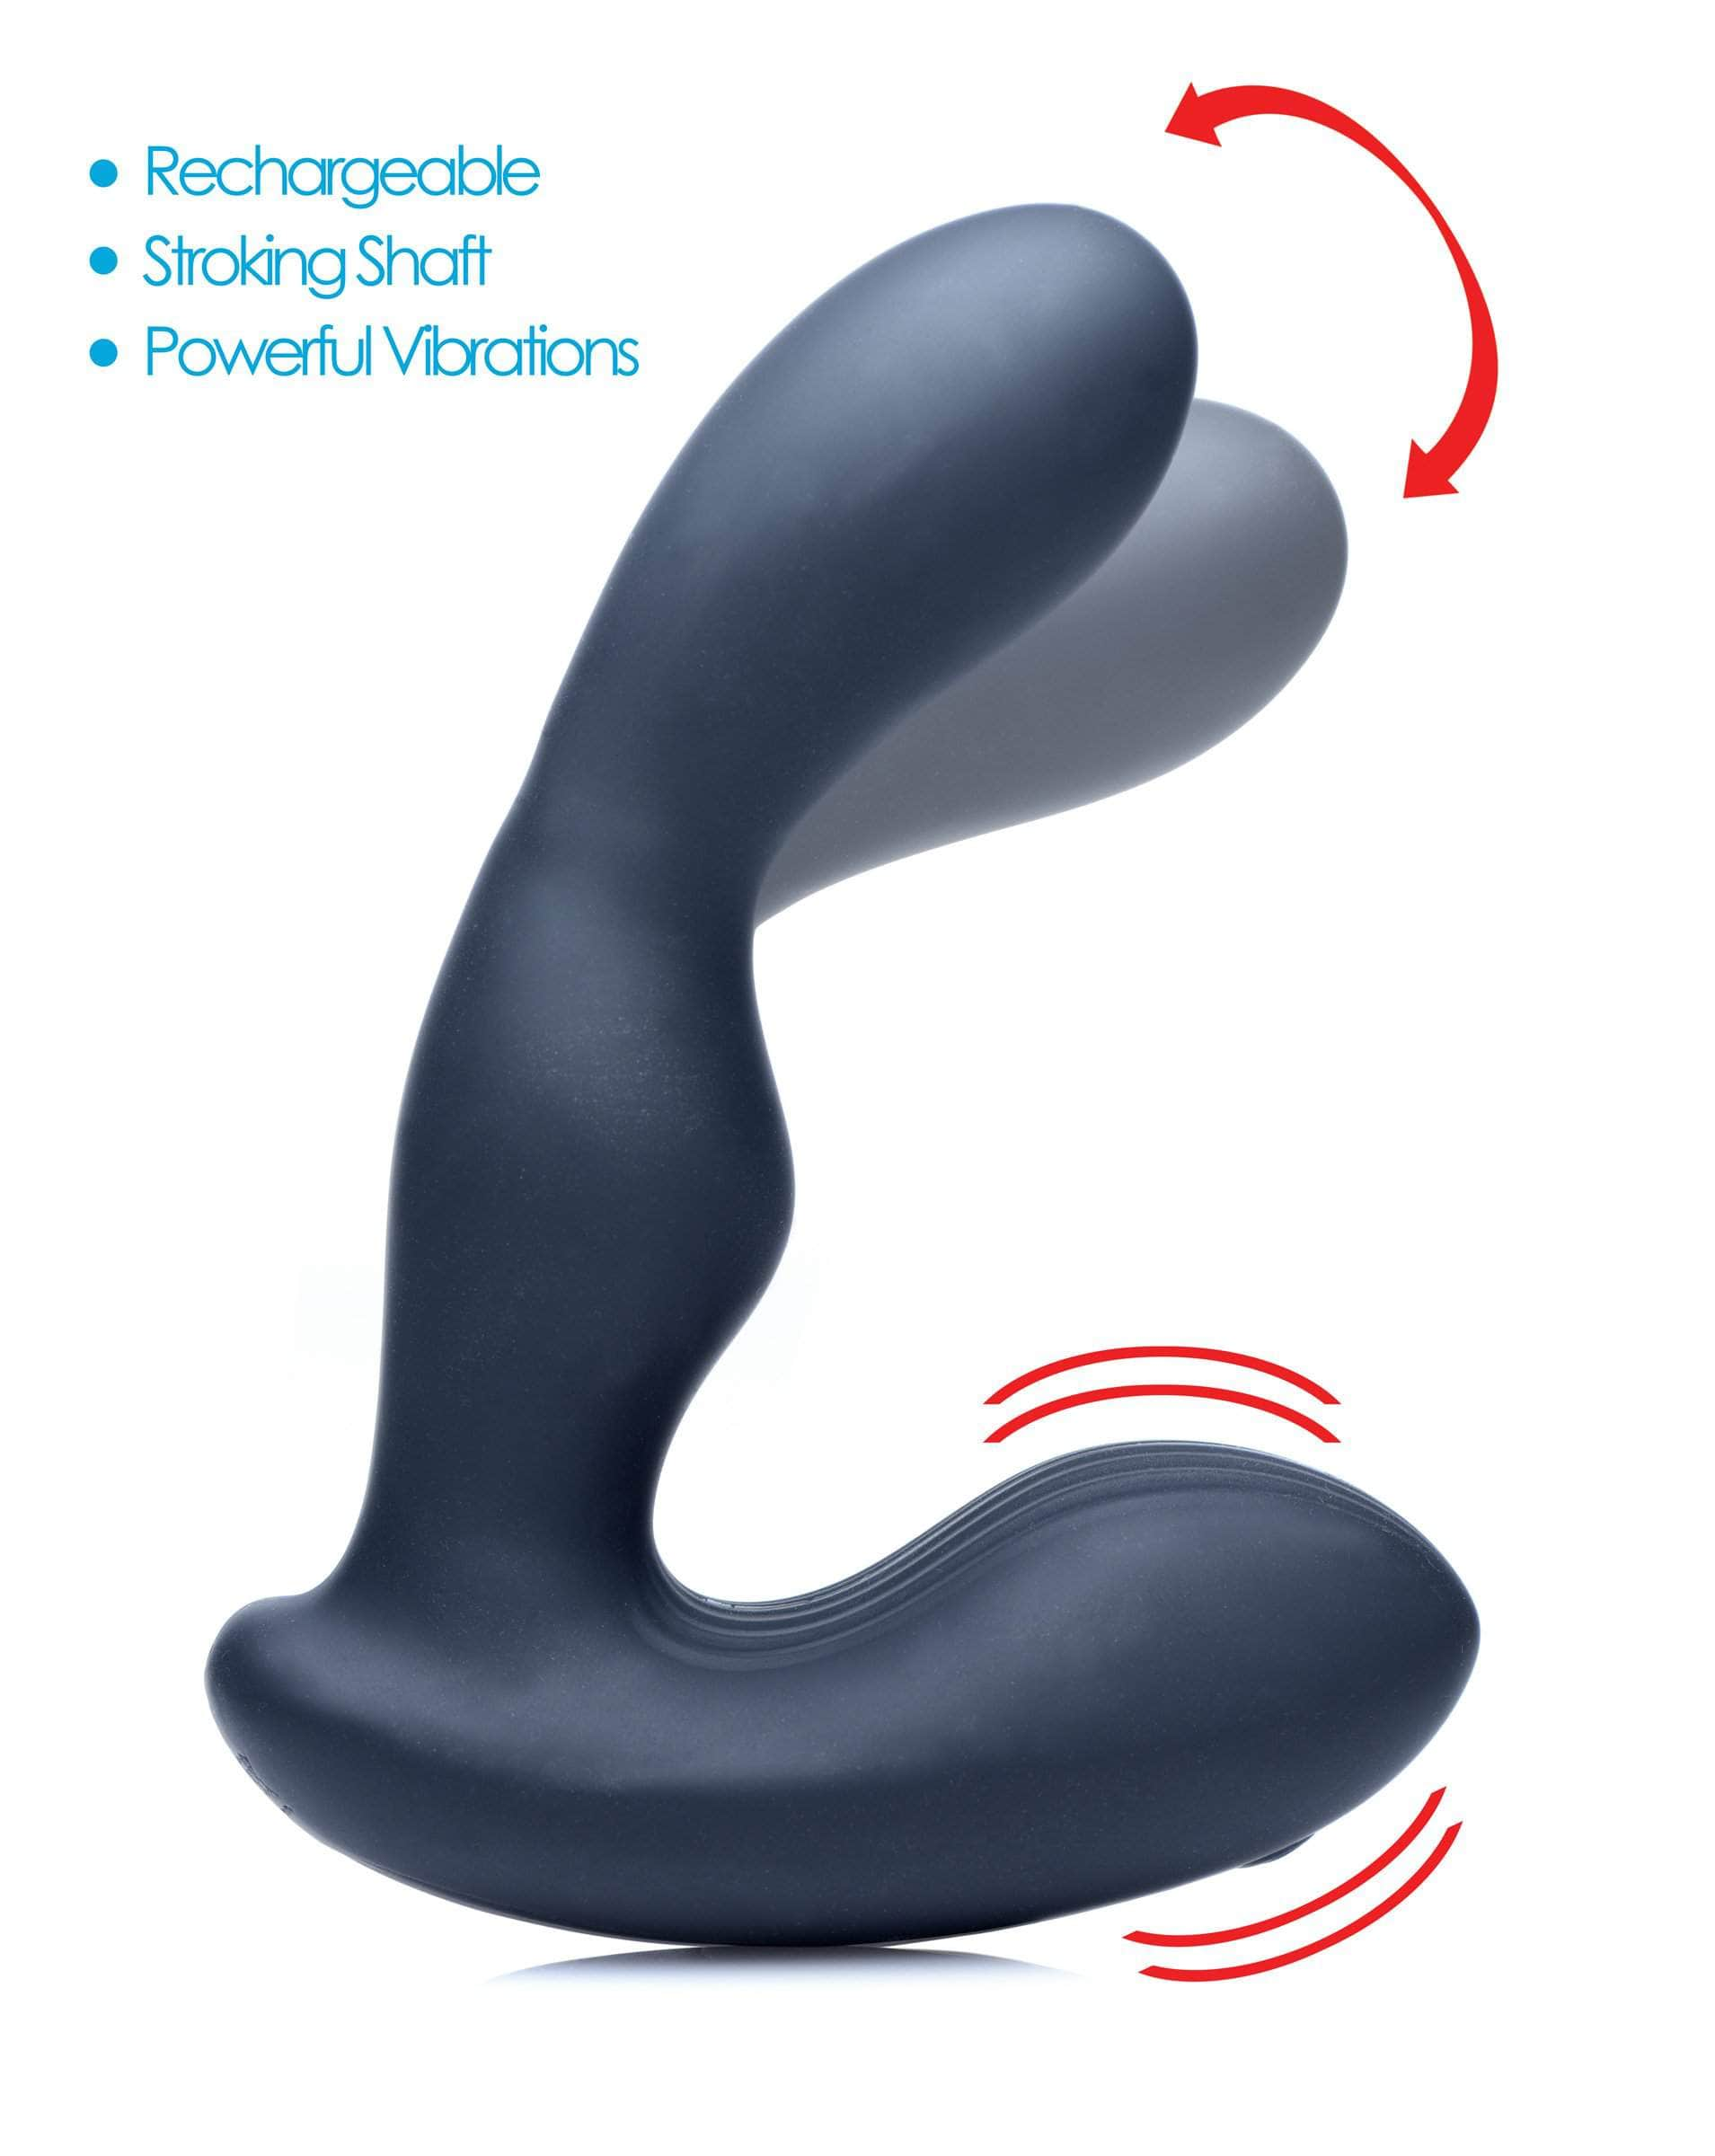 7x P-stroke Silicone Prostate Stimulator With Stroking Shaft